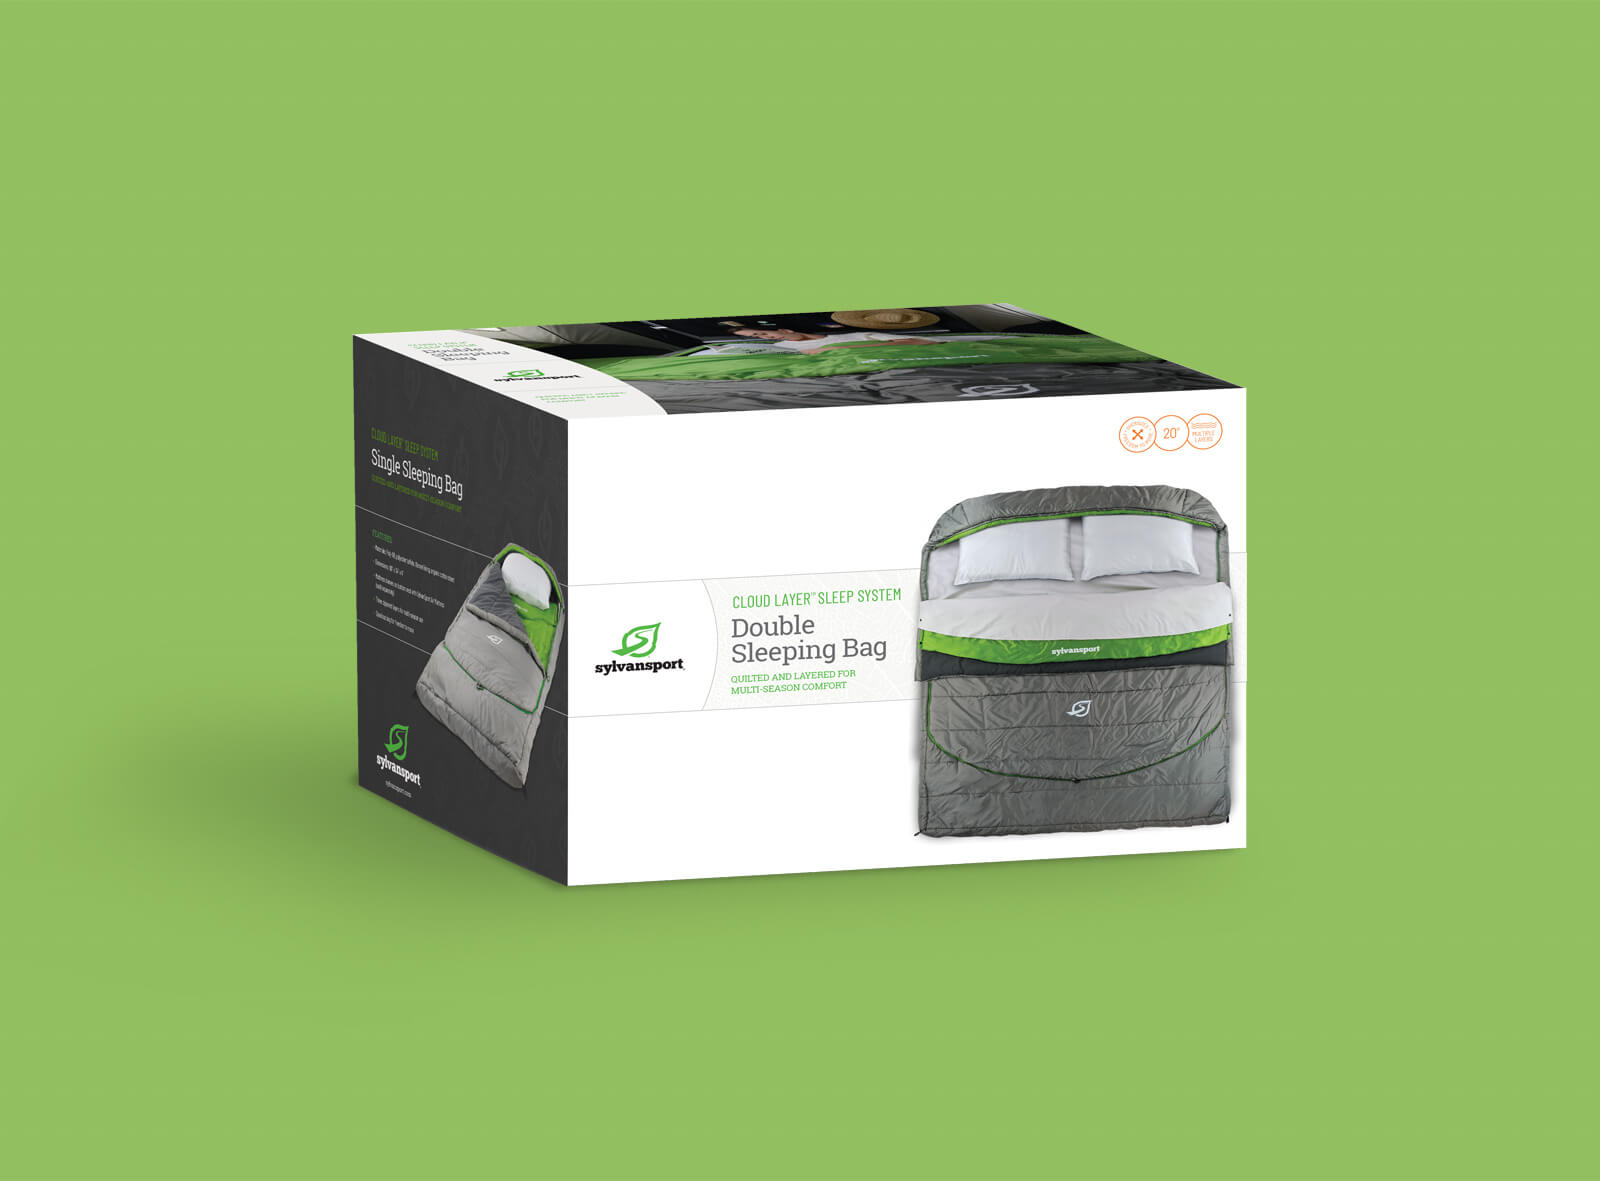 Sylvan Sport packaging box for Double Sleeping Bag system. Shown against a green background. Includes images of the product in use.